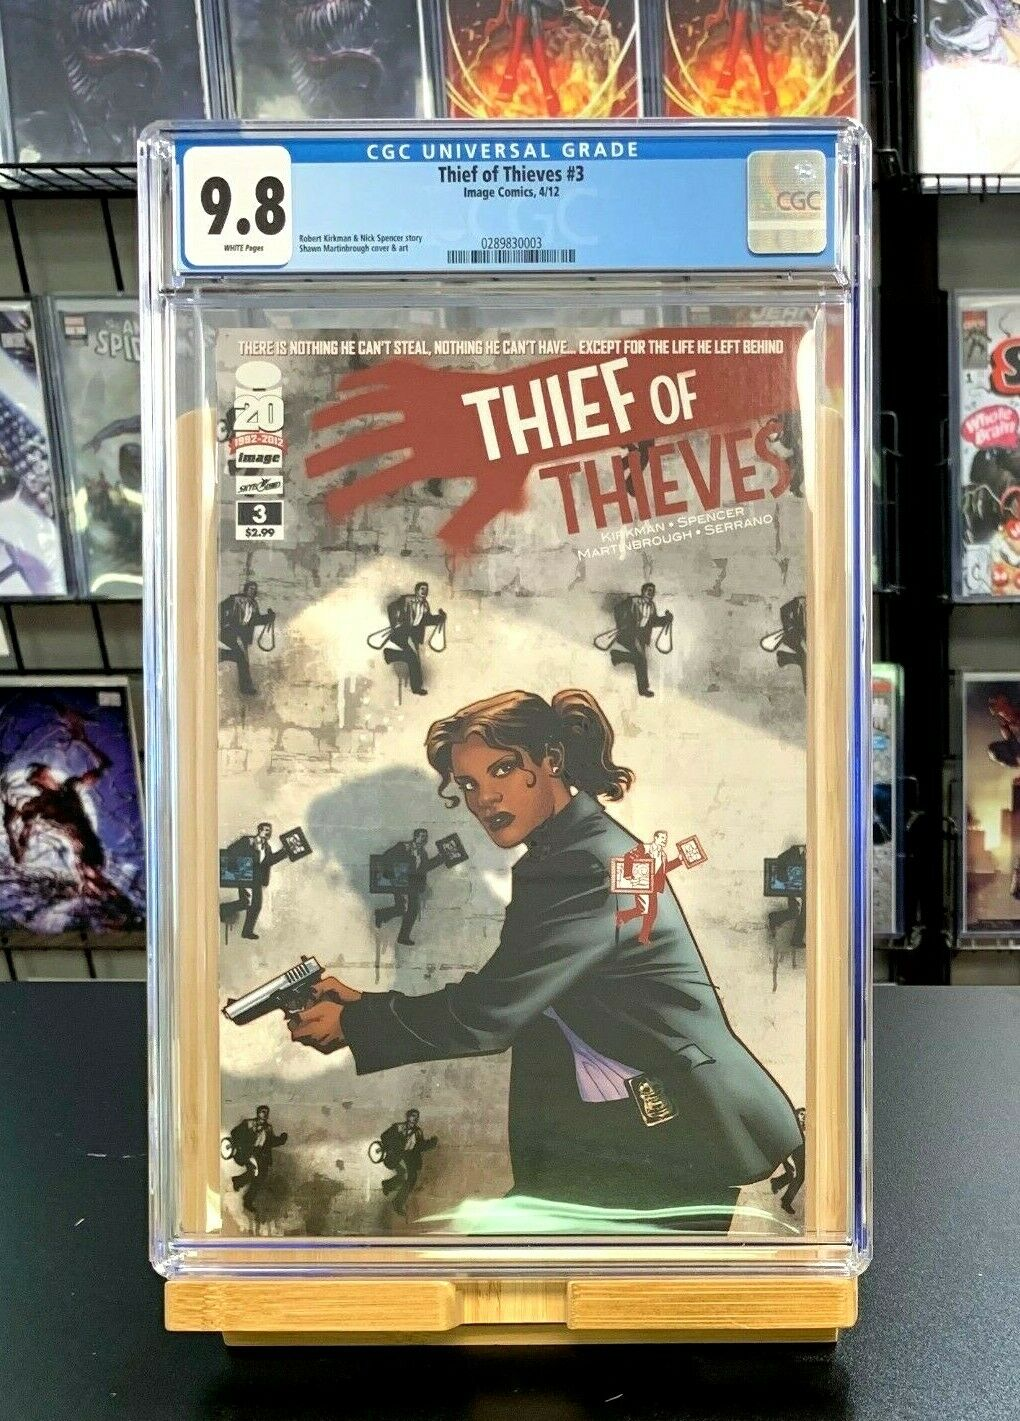 9.8 CGC Thief of Thieves #3 1st Print Robert Kirkman Image Comics 2012